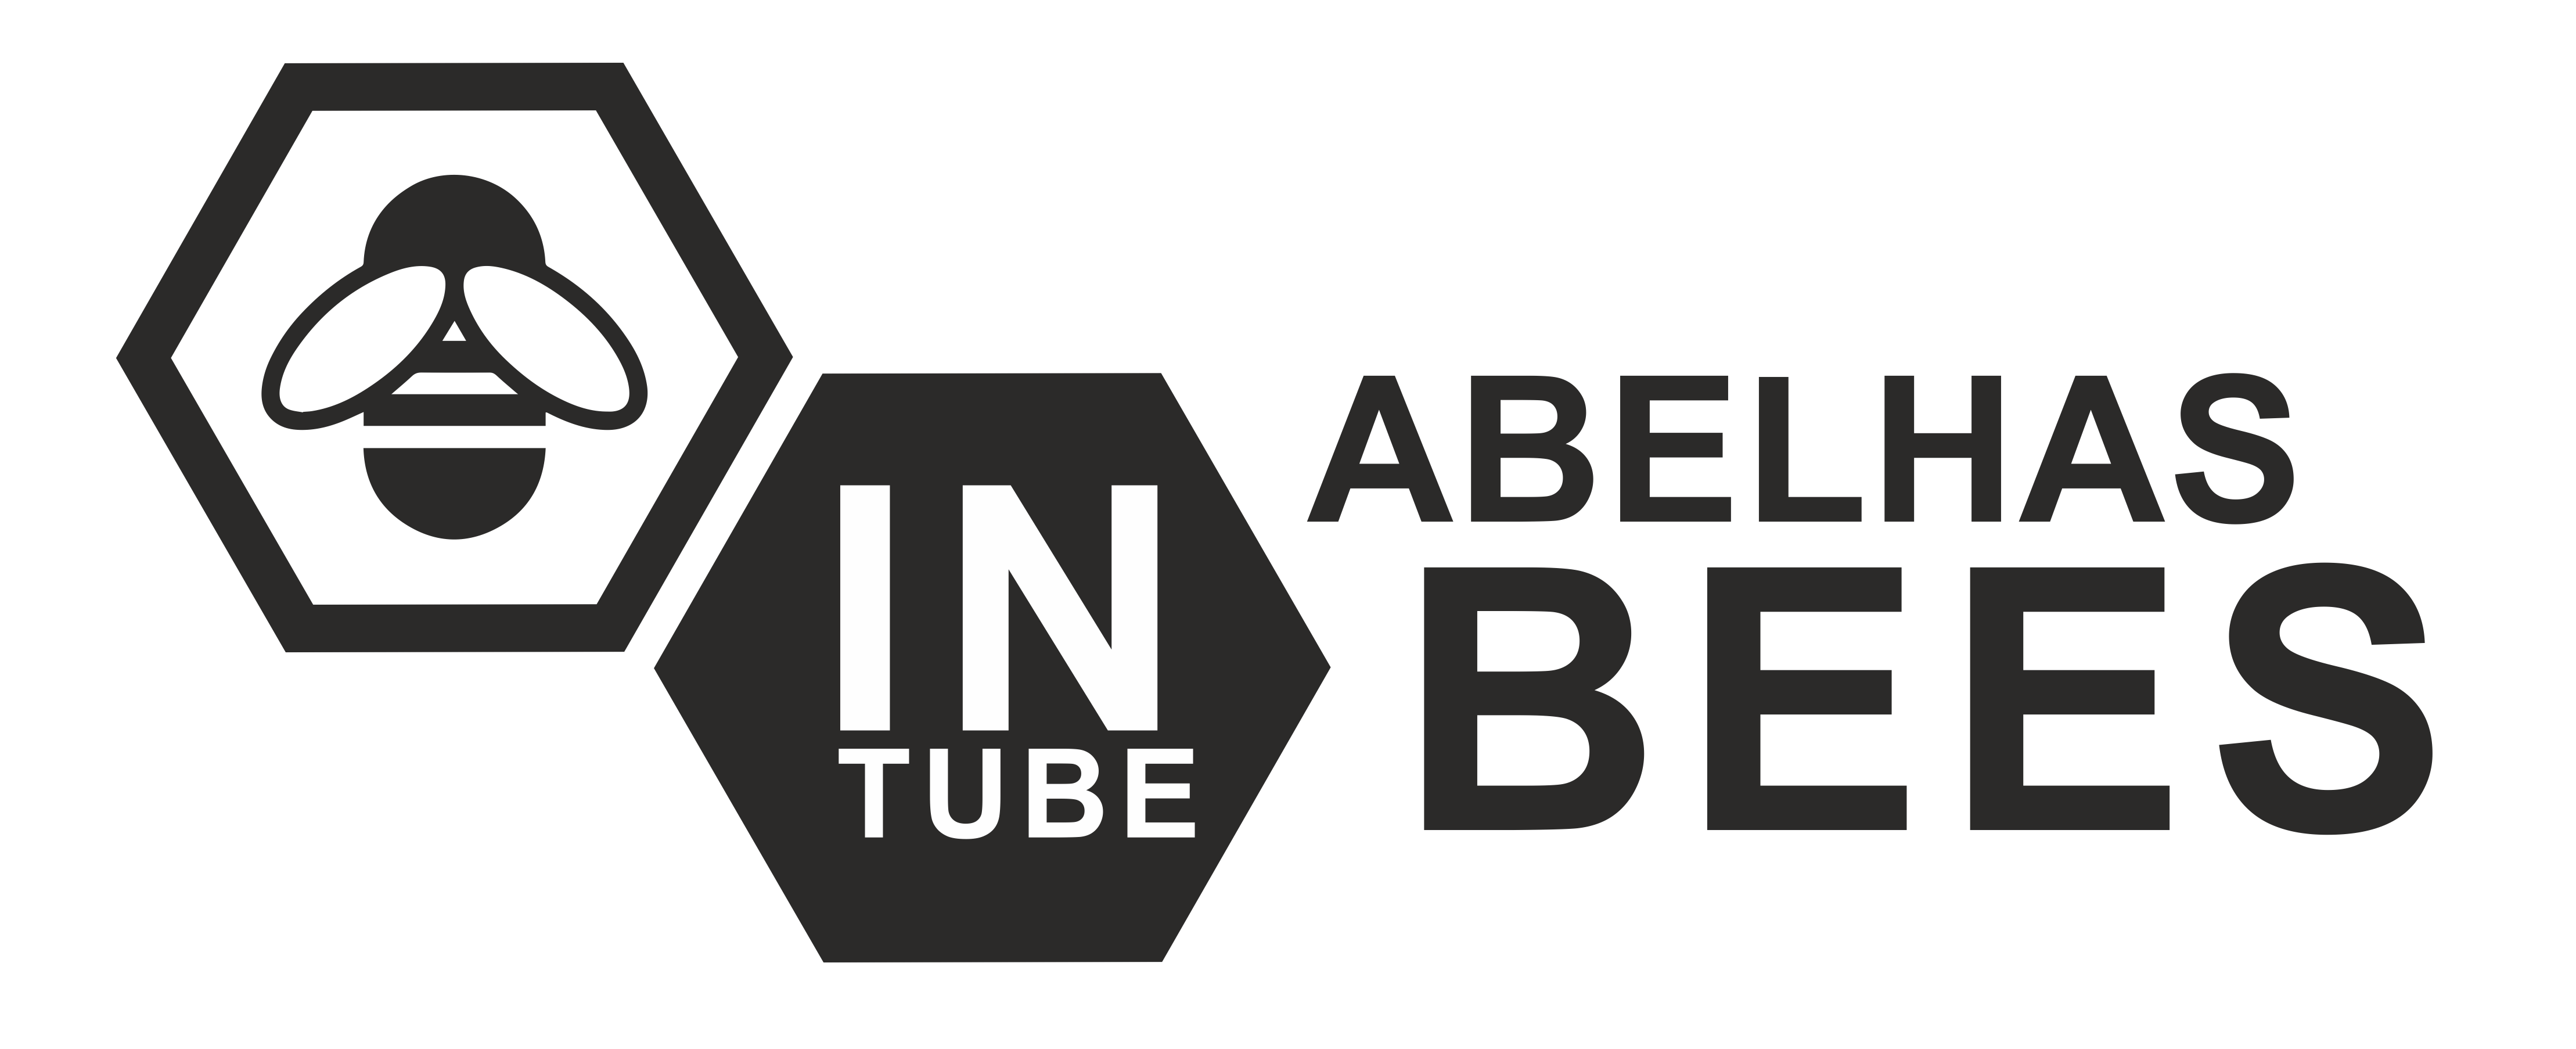 Bees in Tubes logo.png